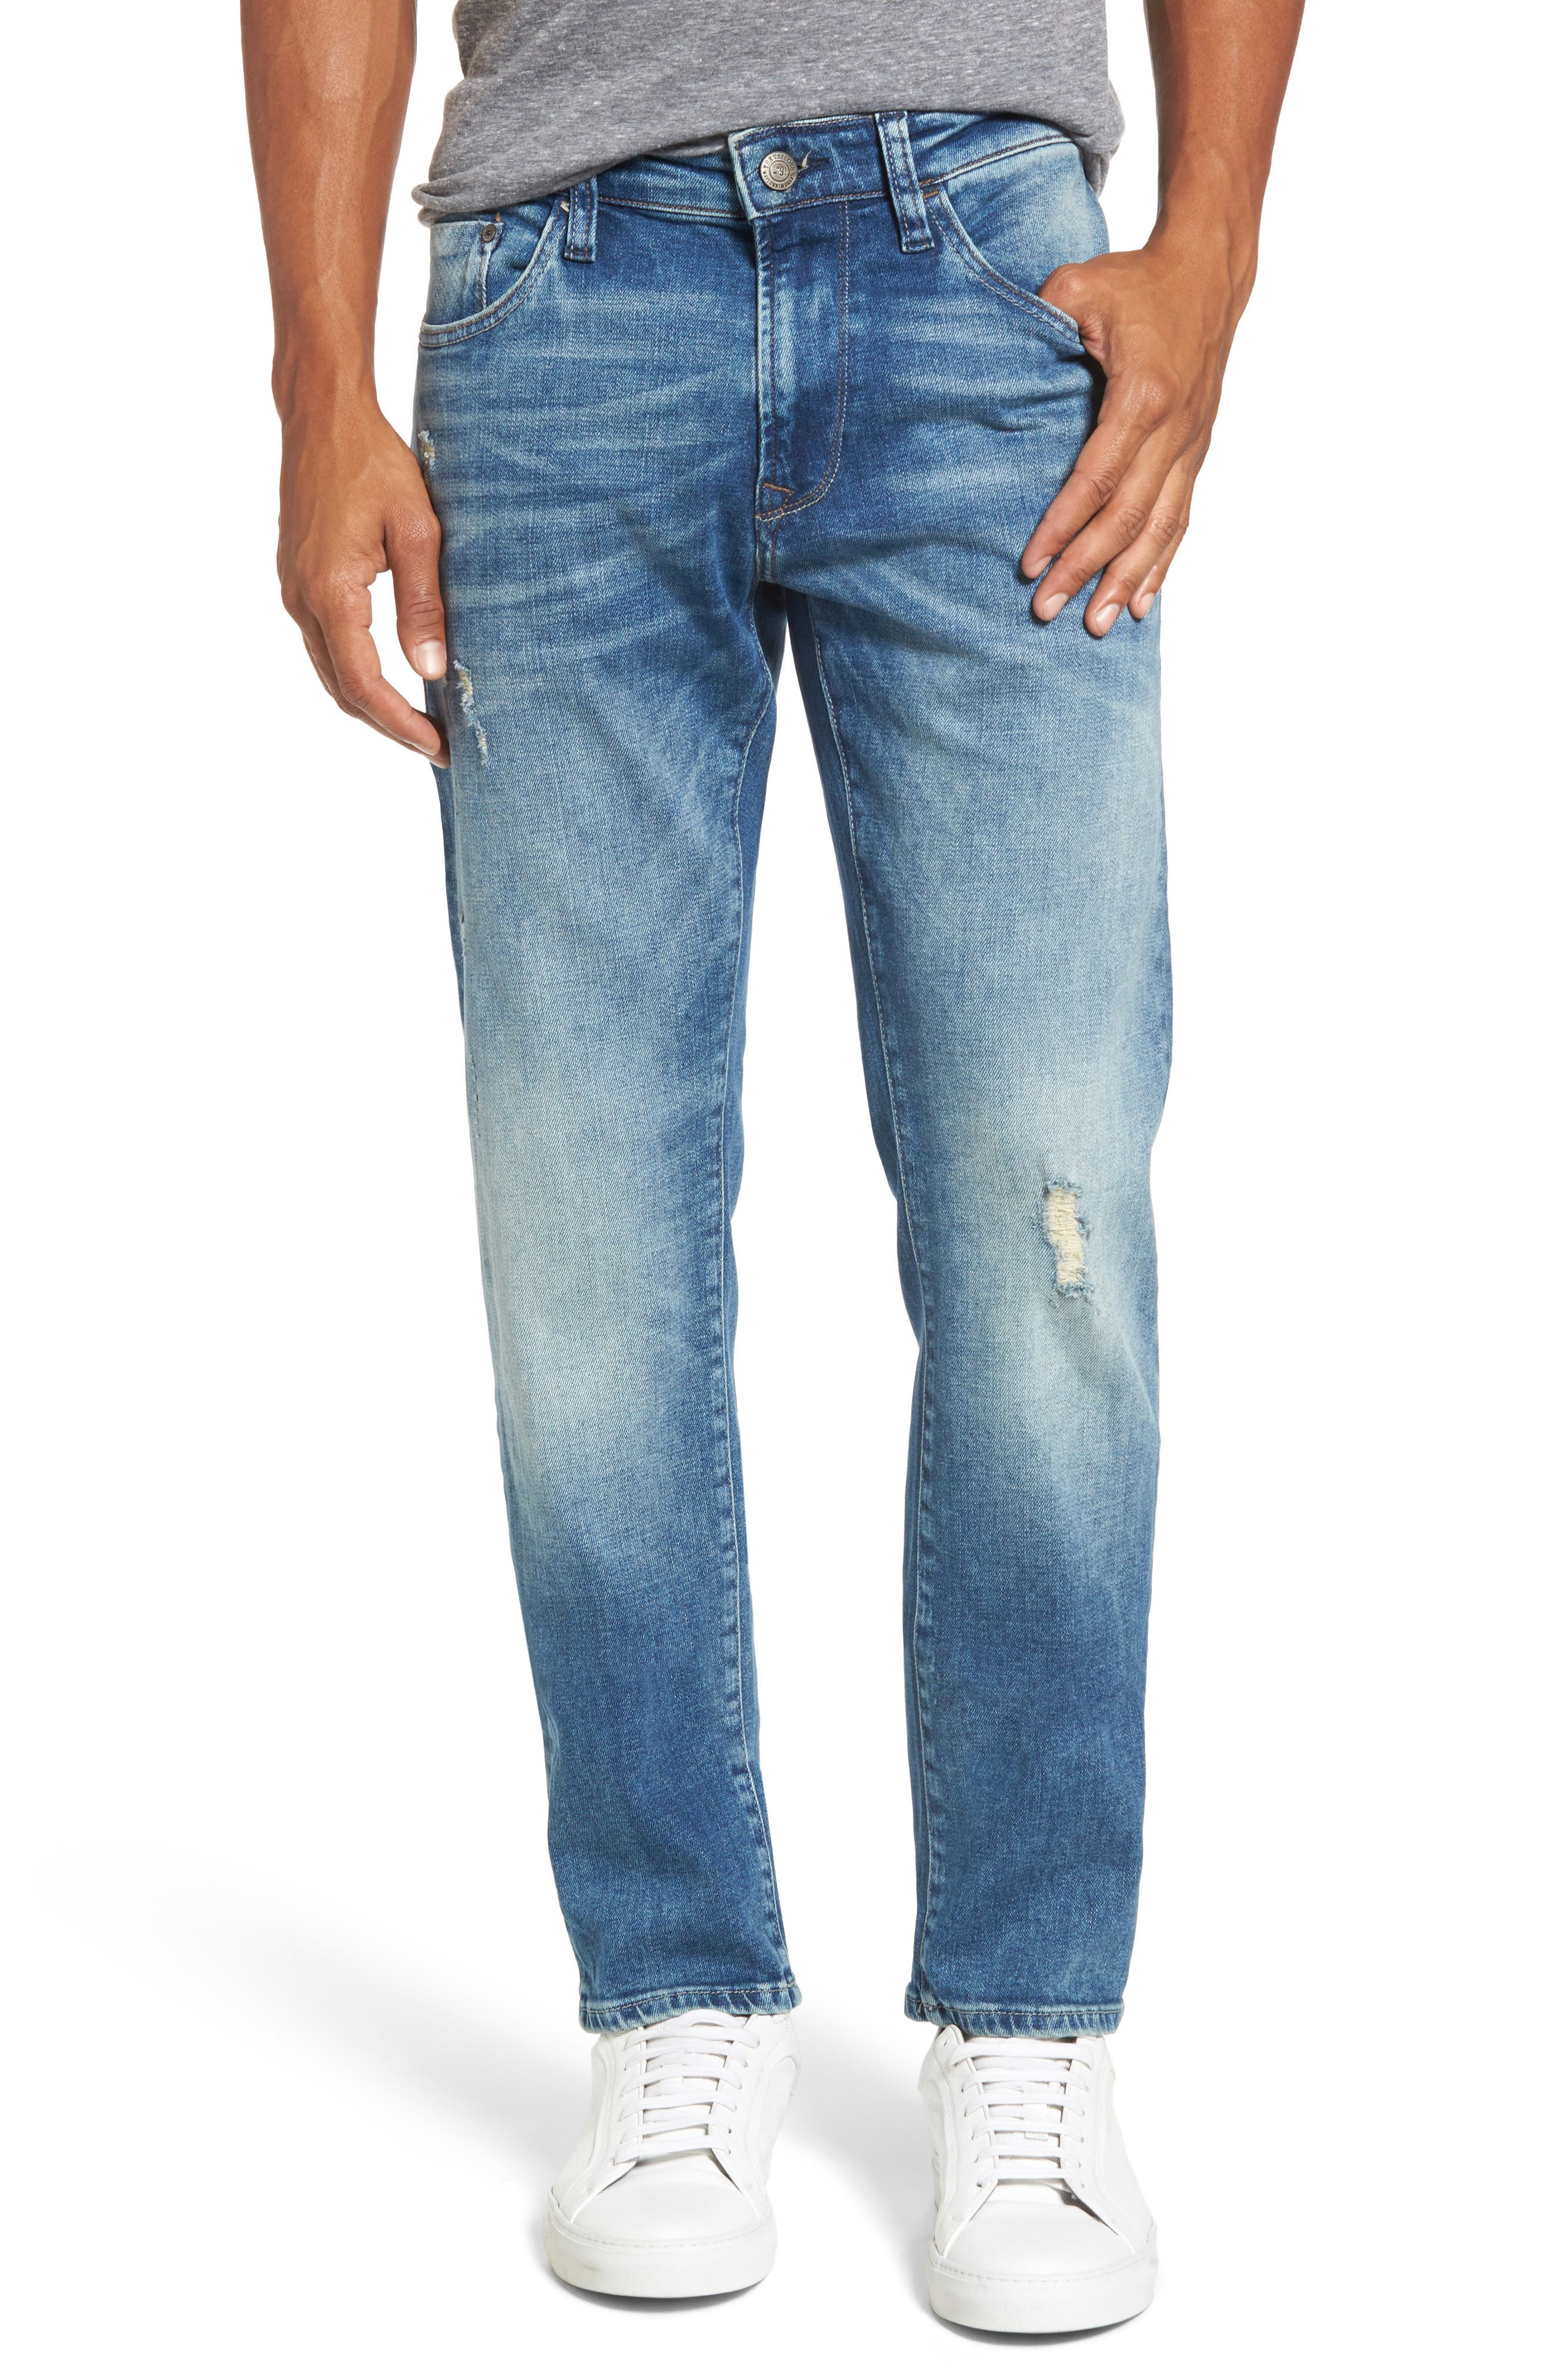 Jake Easy Slim Fit Jeans,                         Main,                         color, Mid Ripped Authentic Vintage